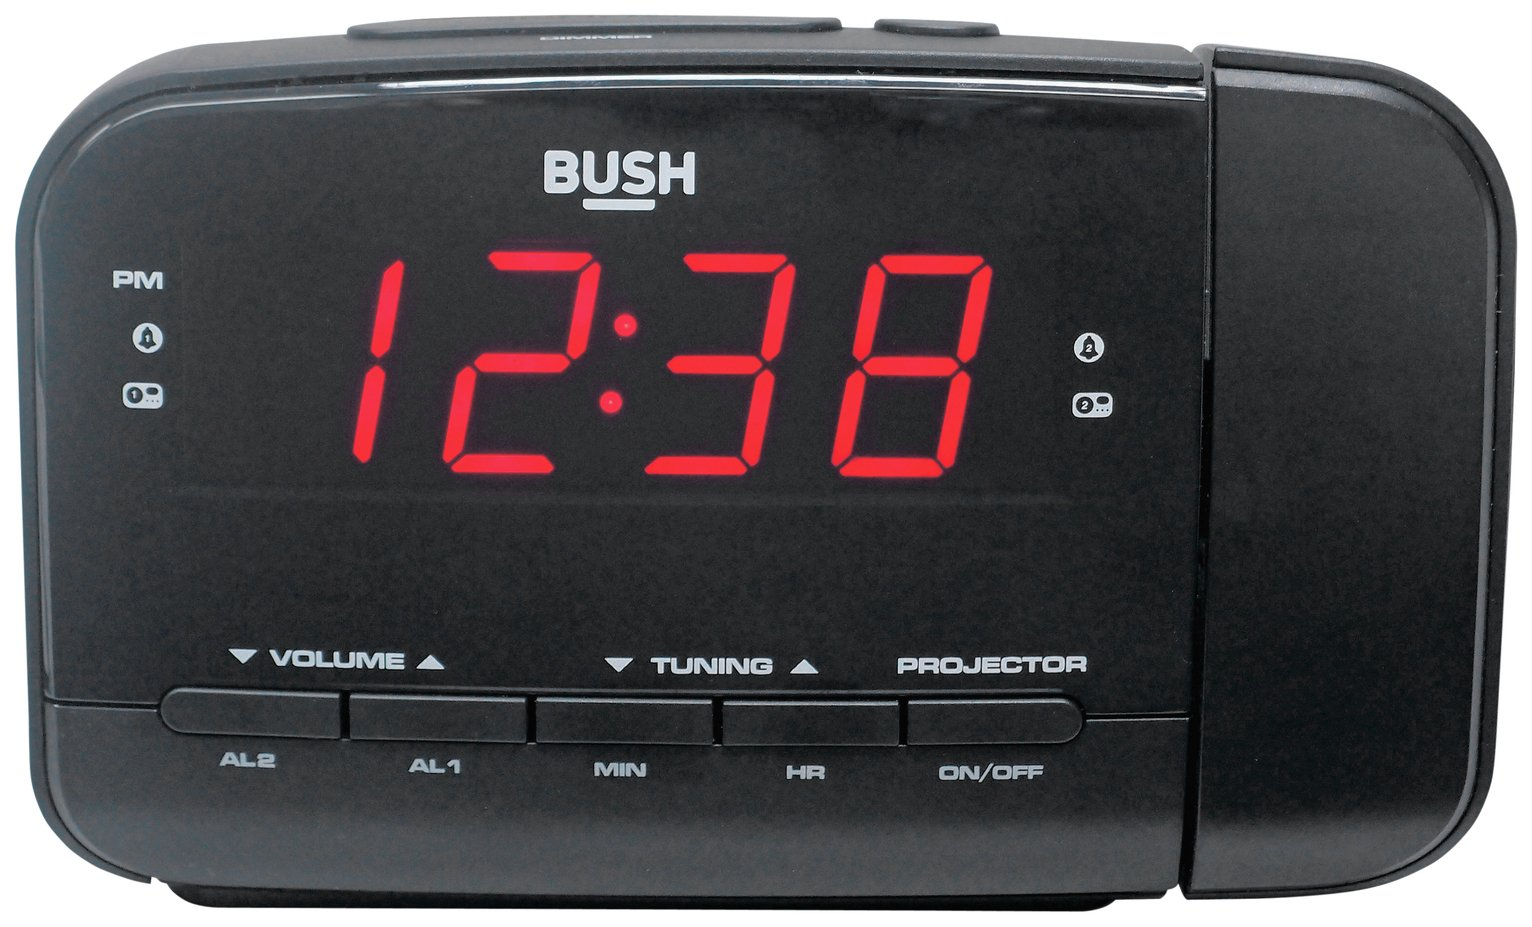 sale on bush projection alarm clock bush now available our best price on bush projection ala. Black Bedroom Furniture Sets. Home Design Ideas